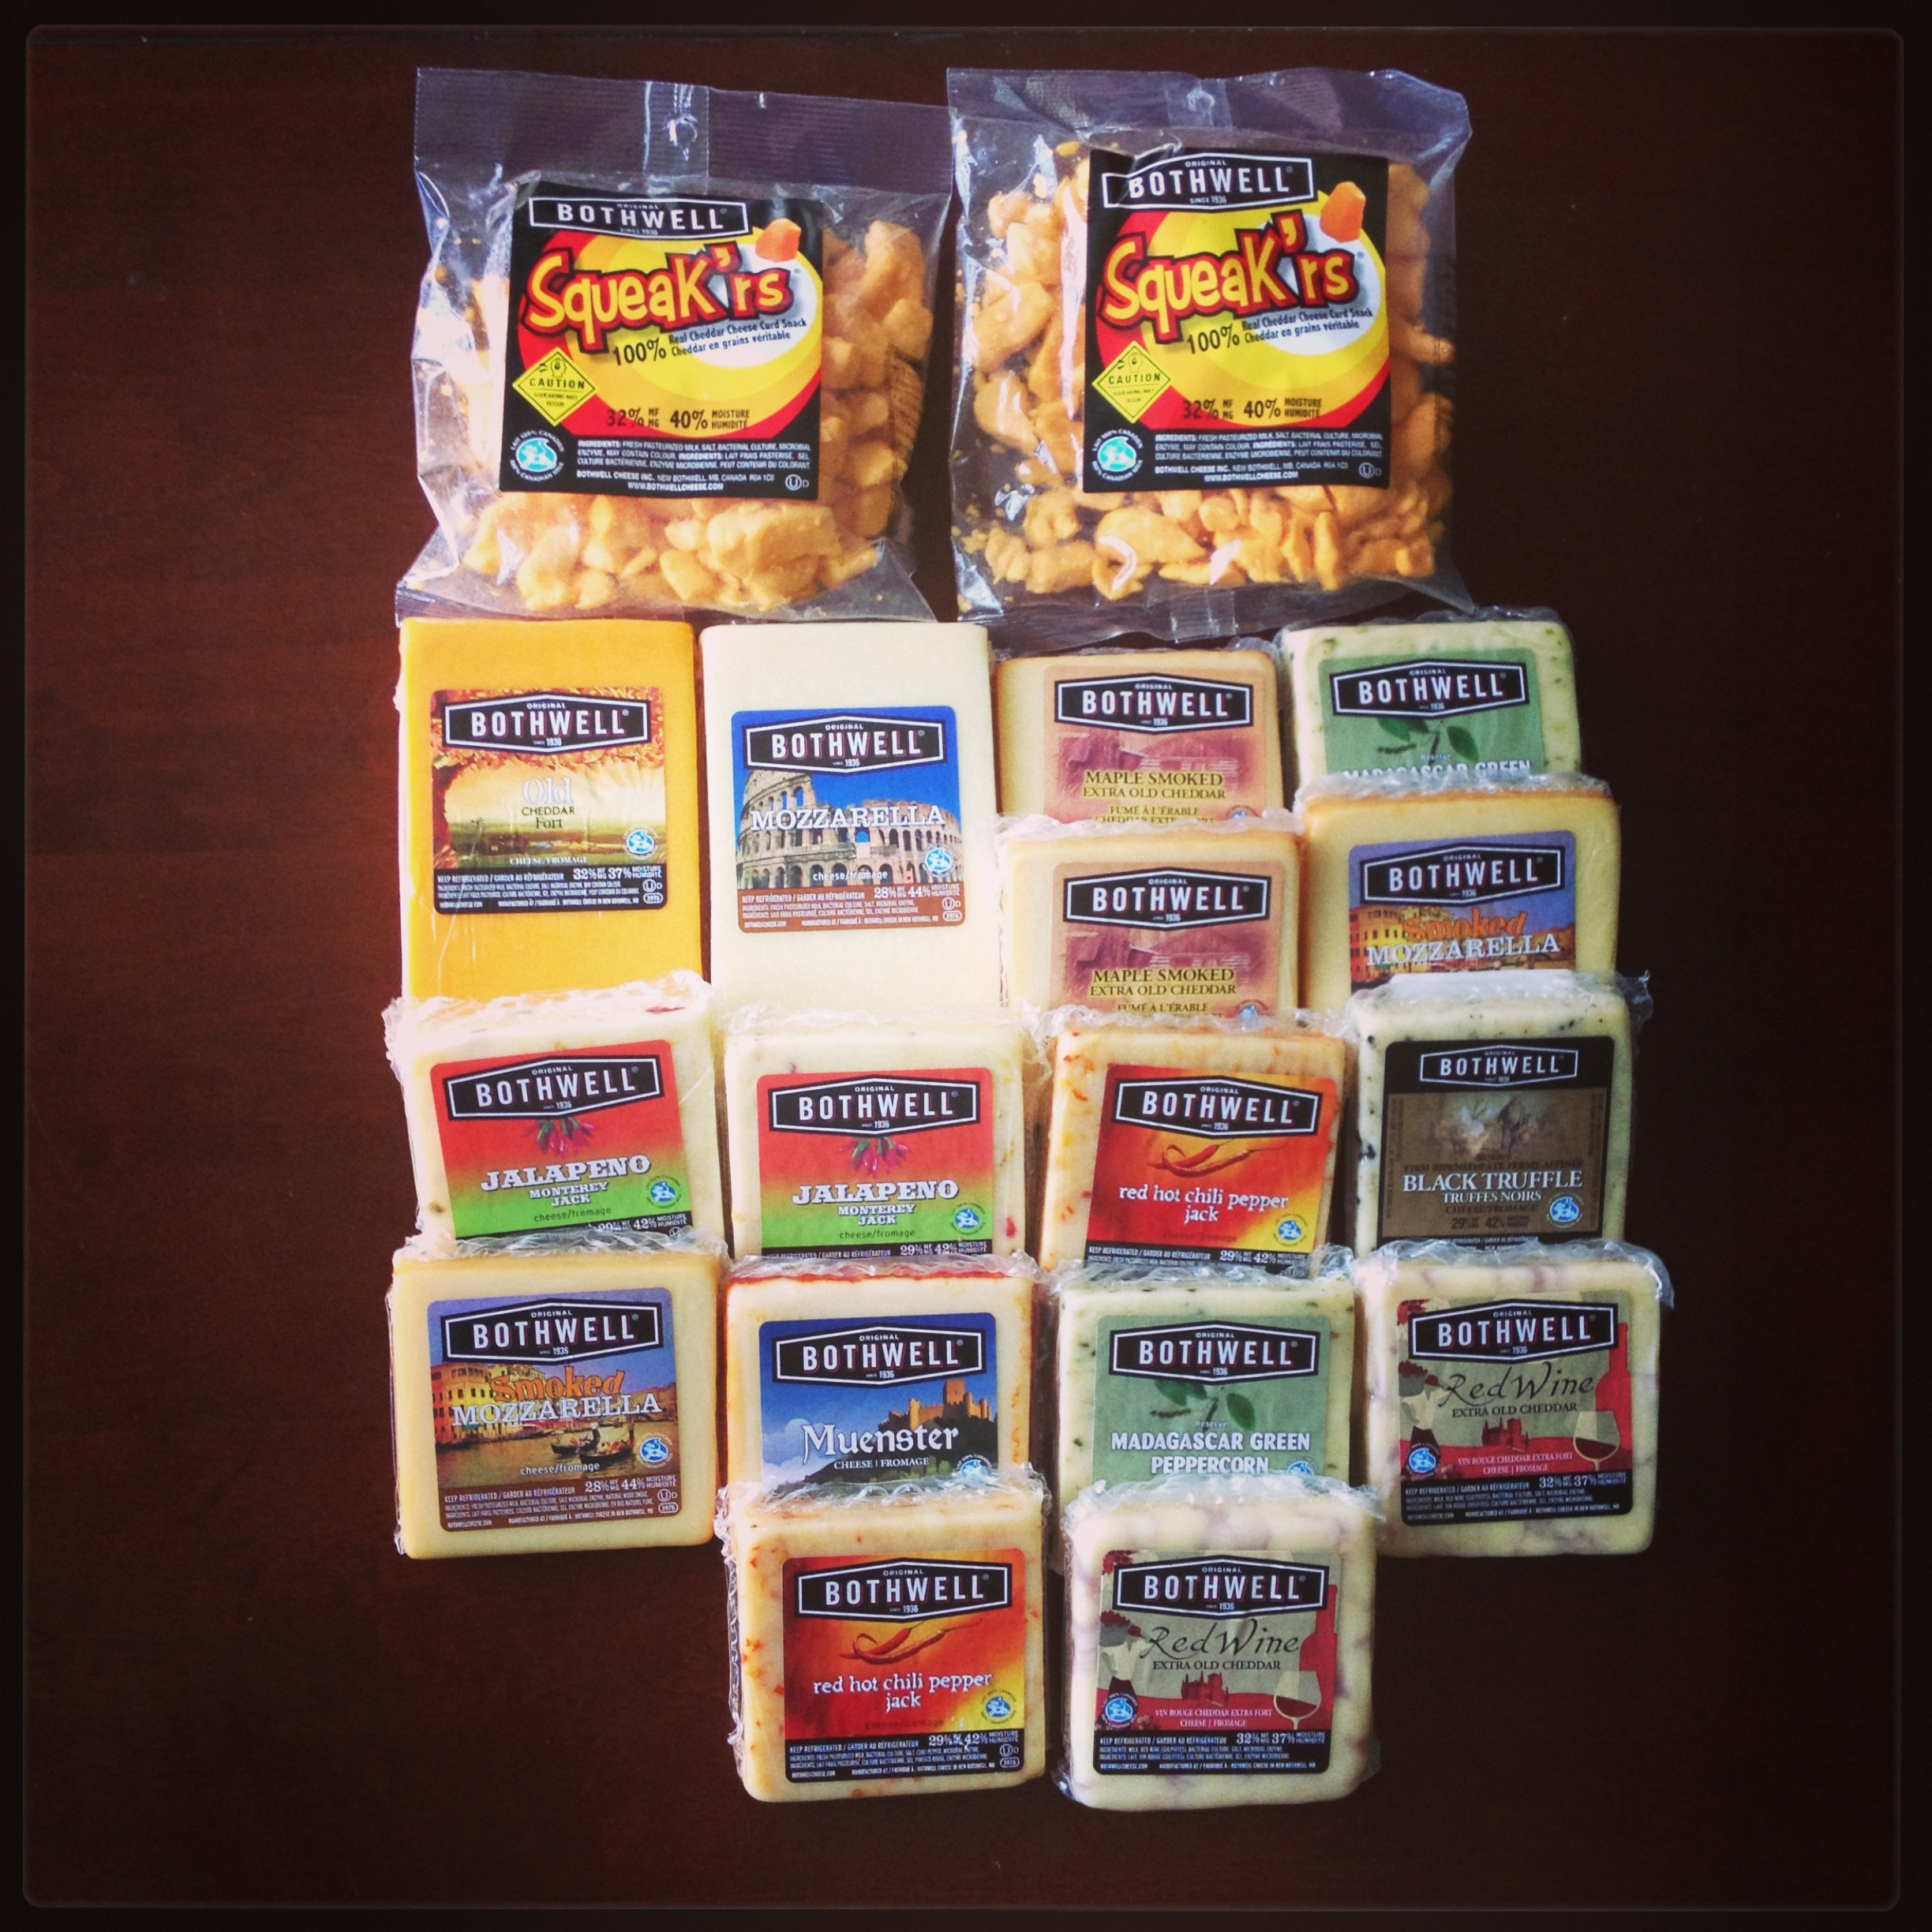 Bothwell Cheese Prize Pack